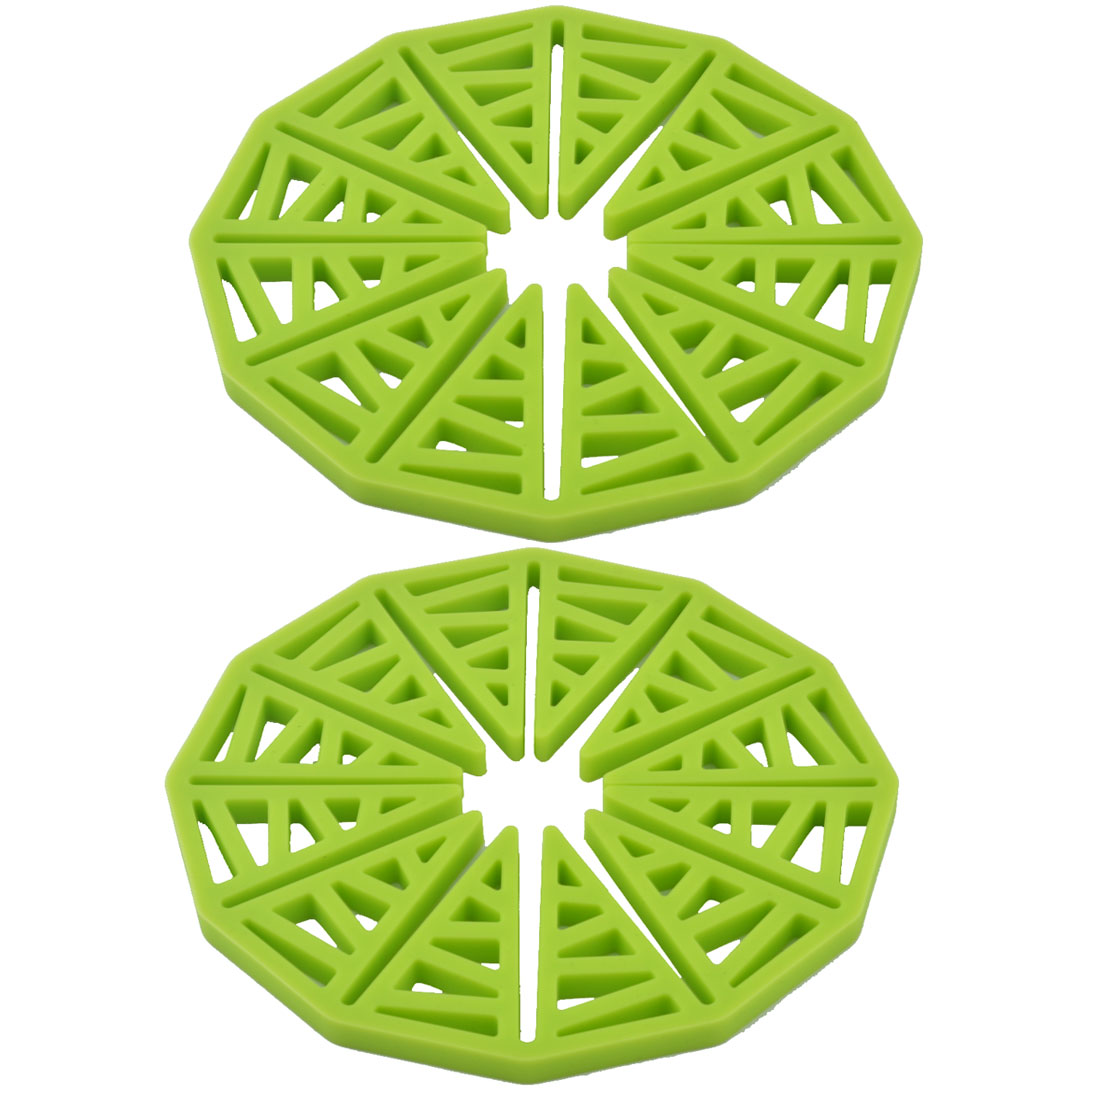 Sunflower Design Silicone Table Heat Resistant Mat Cushion Placemat Green 2pcs